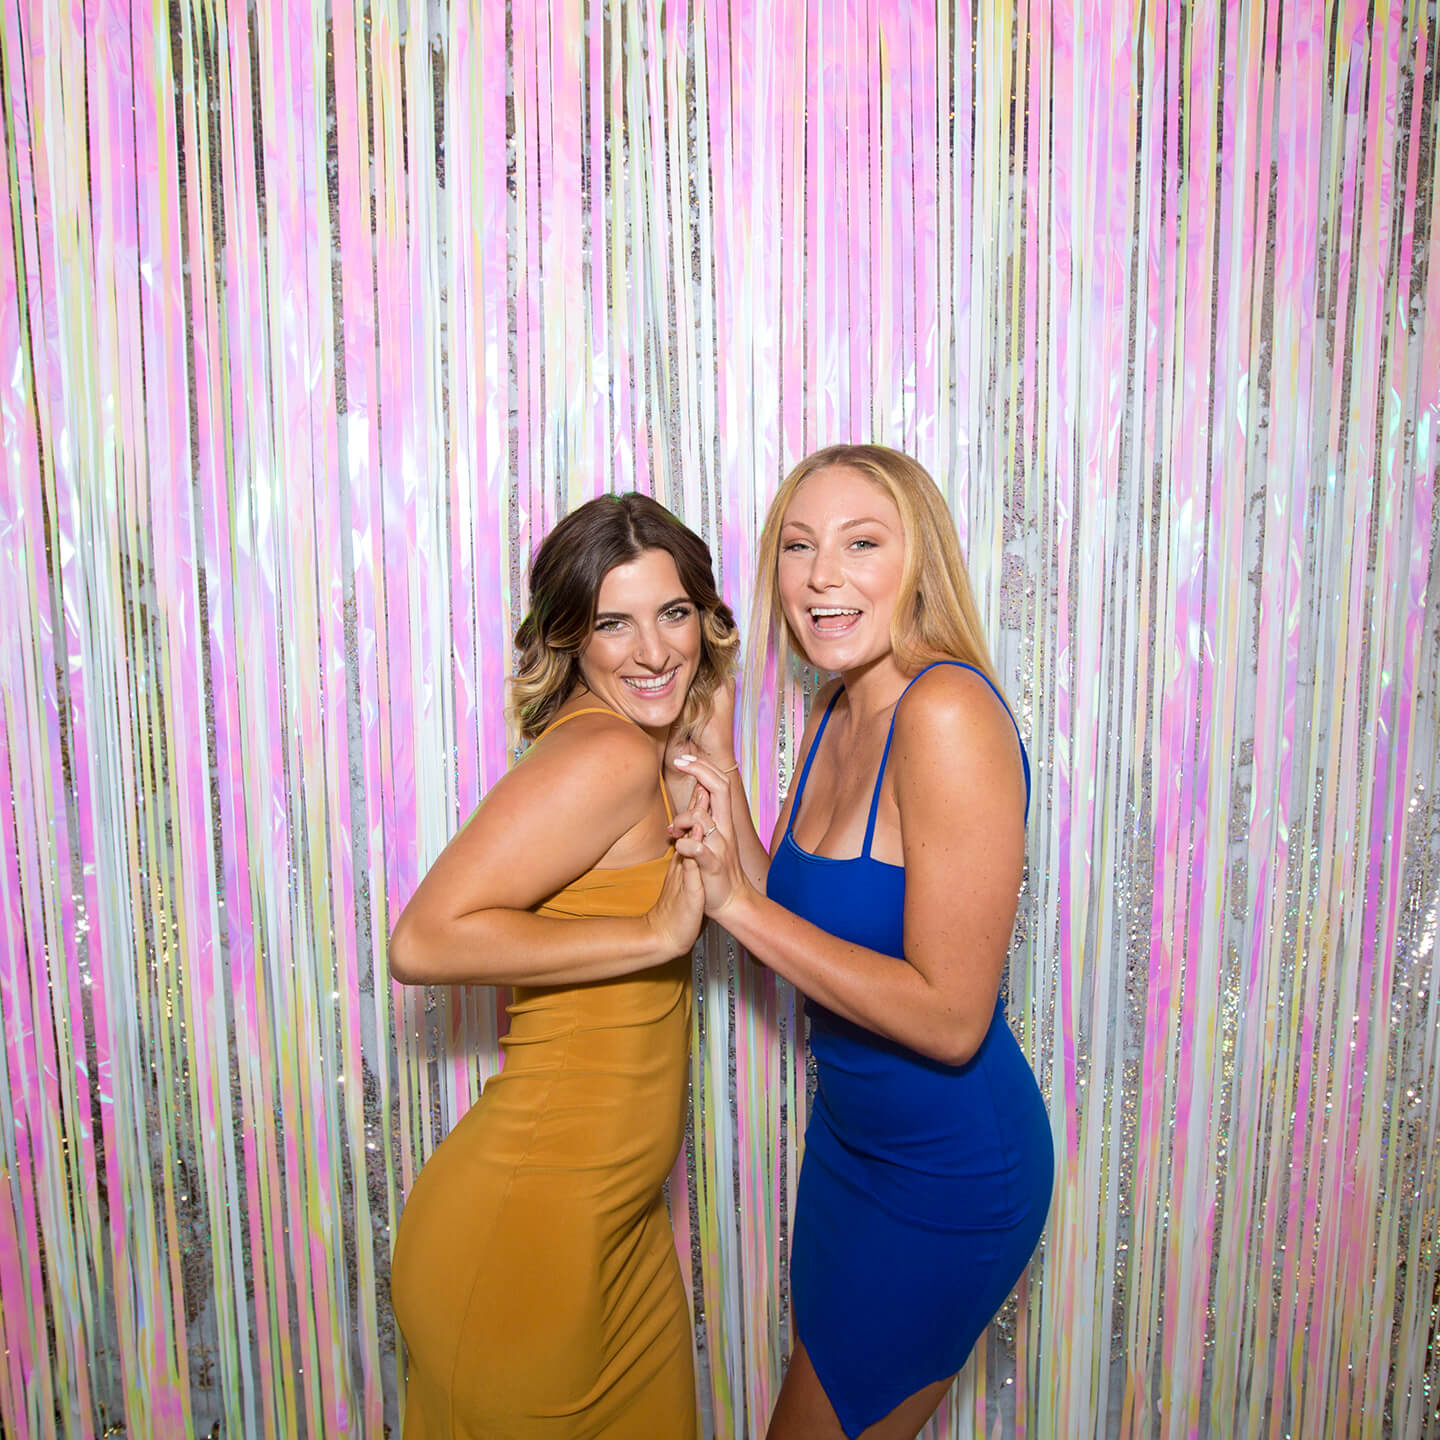 Arvada CO  Photobooth Props |  Arvada CO  Green Screen Photobooths Rental  |  Arvada CO  Co. Fun Selfie Station Props Rental